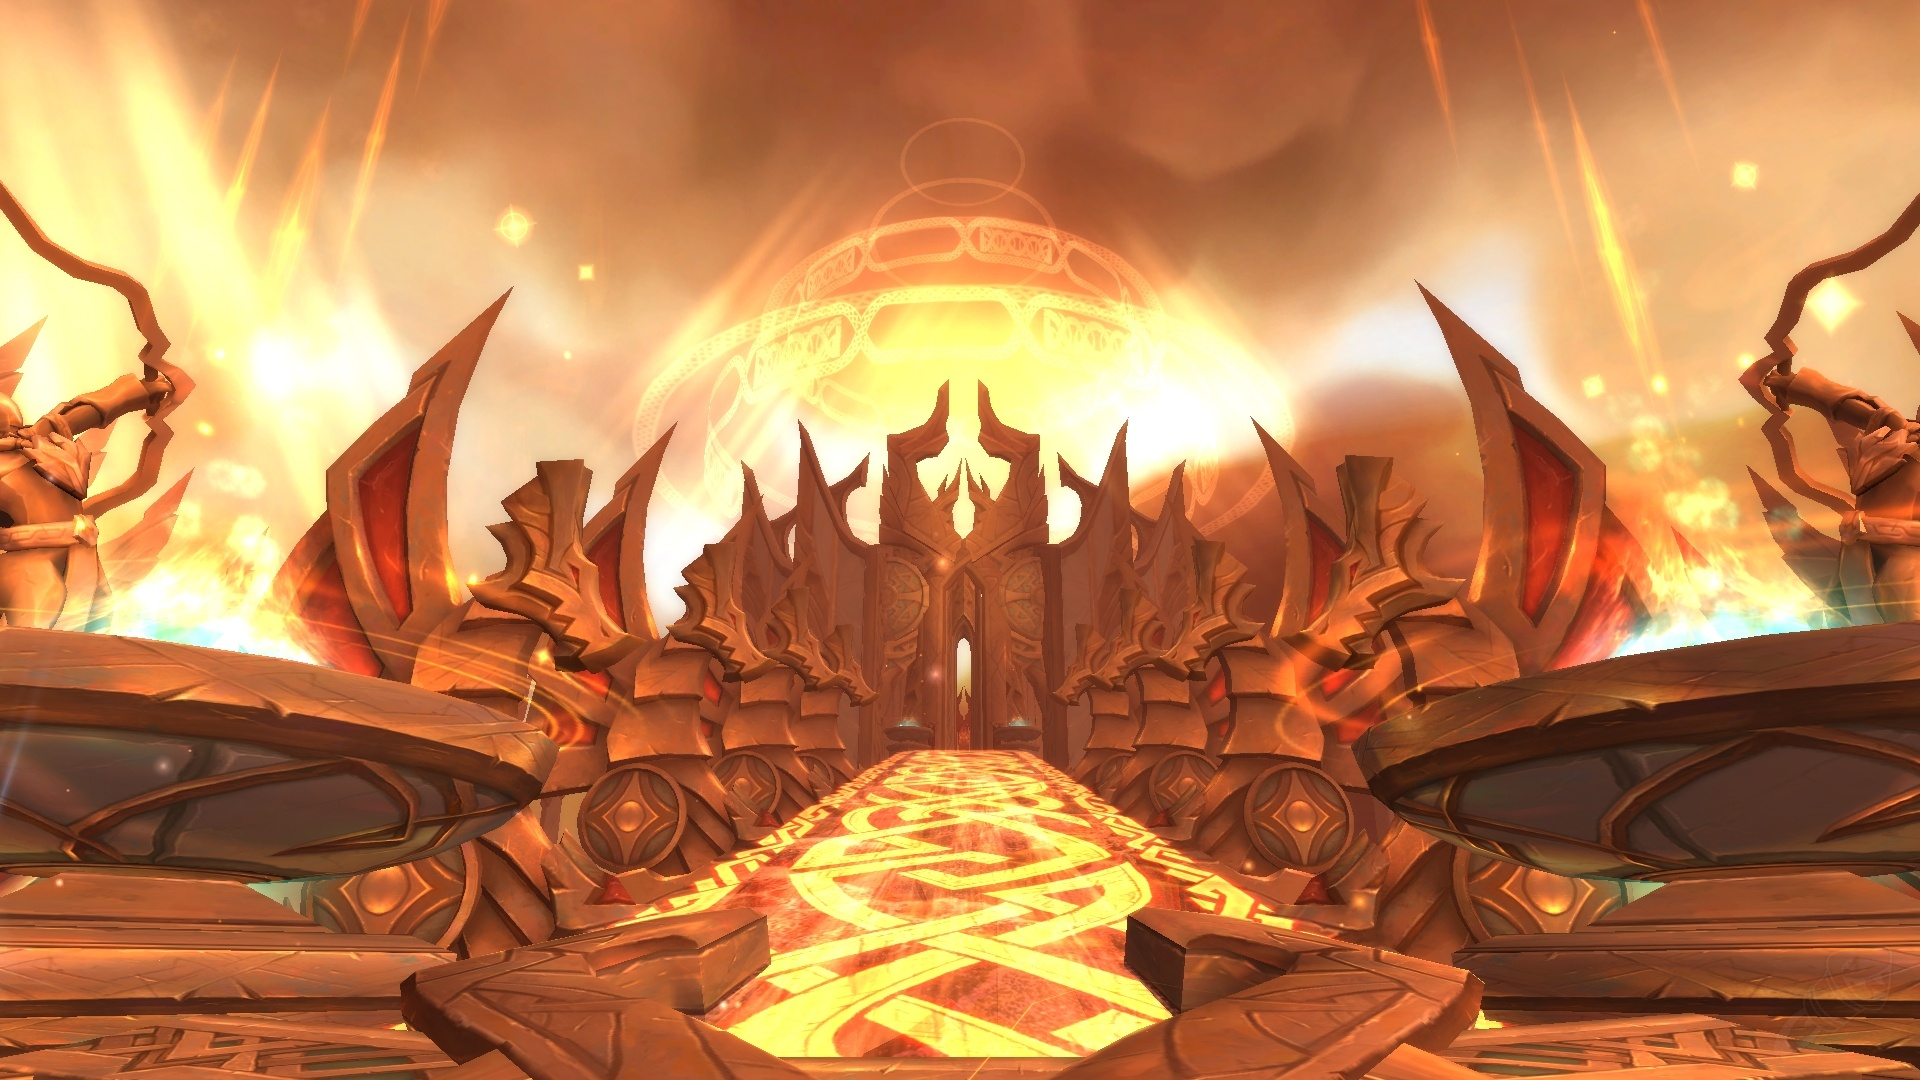 world of warcraft halls of valor more animation texture 3d animation ...